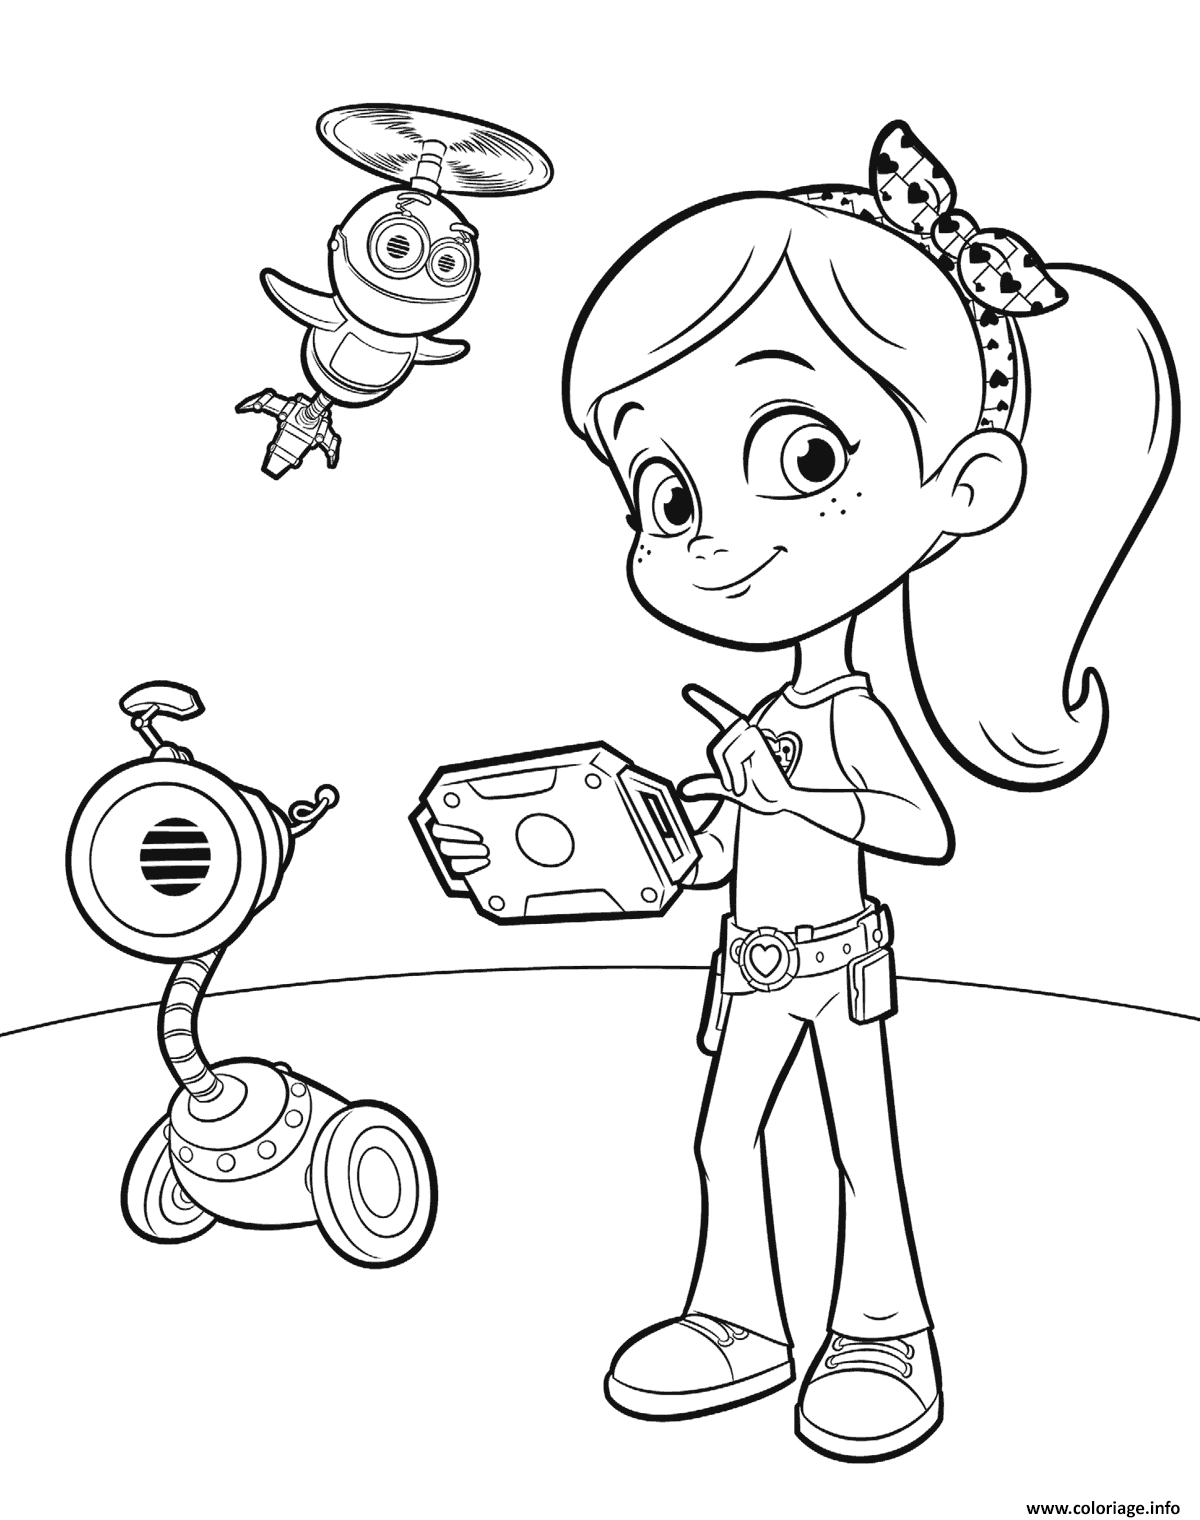 Coloriage Rusty Rivets For Girls Dessin à Imprimer